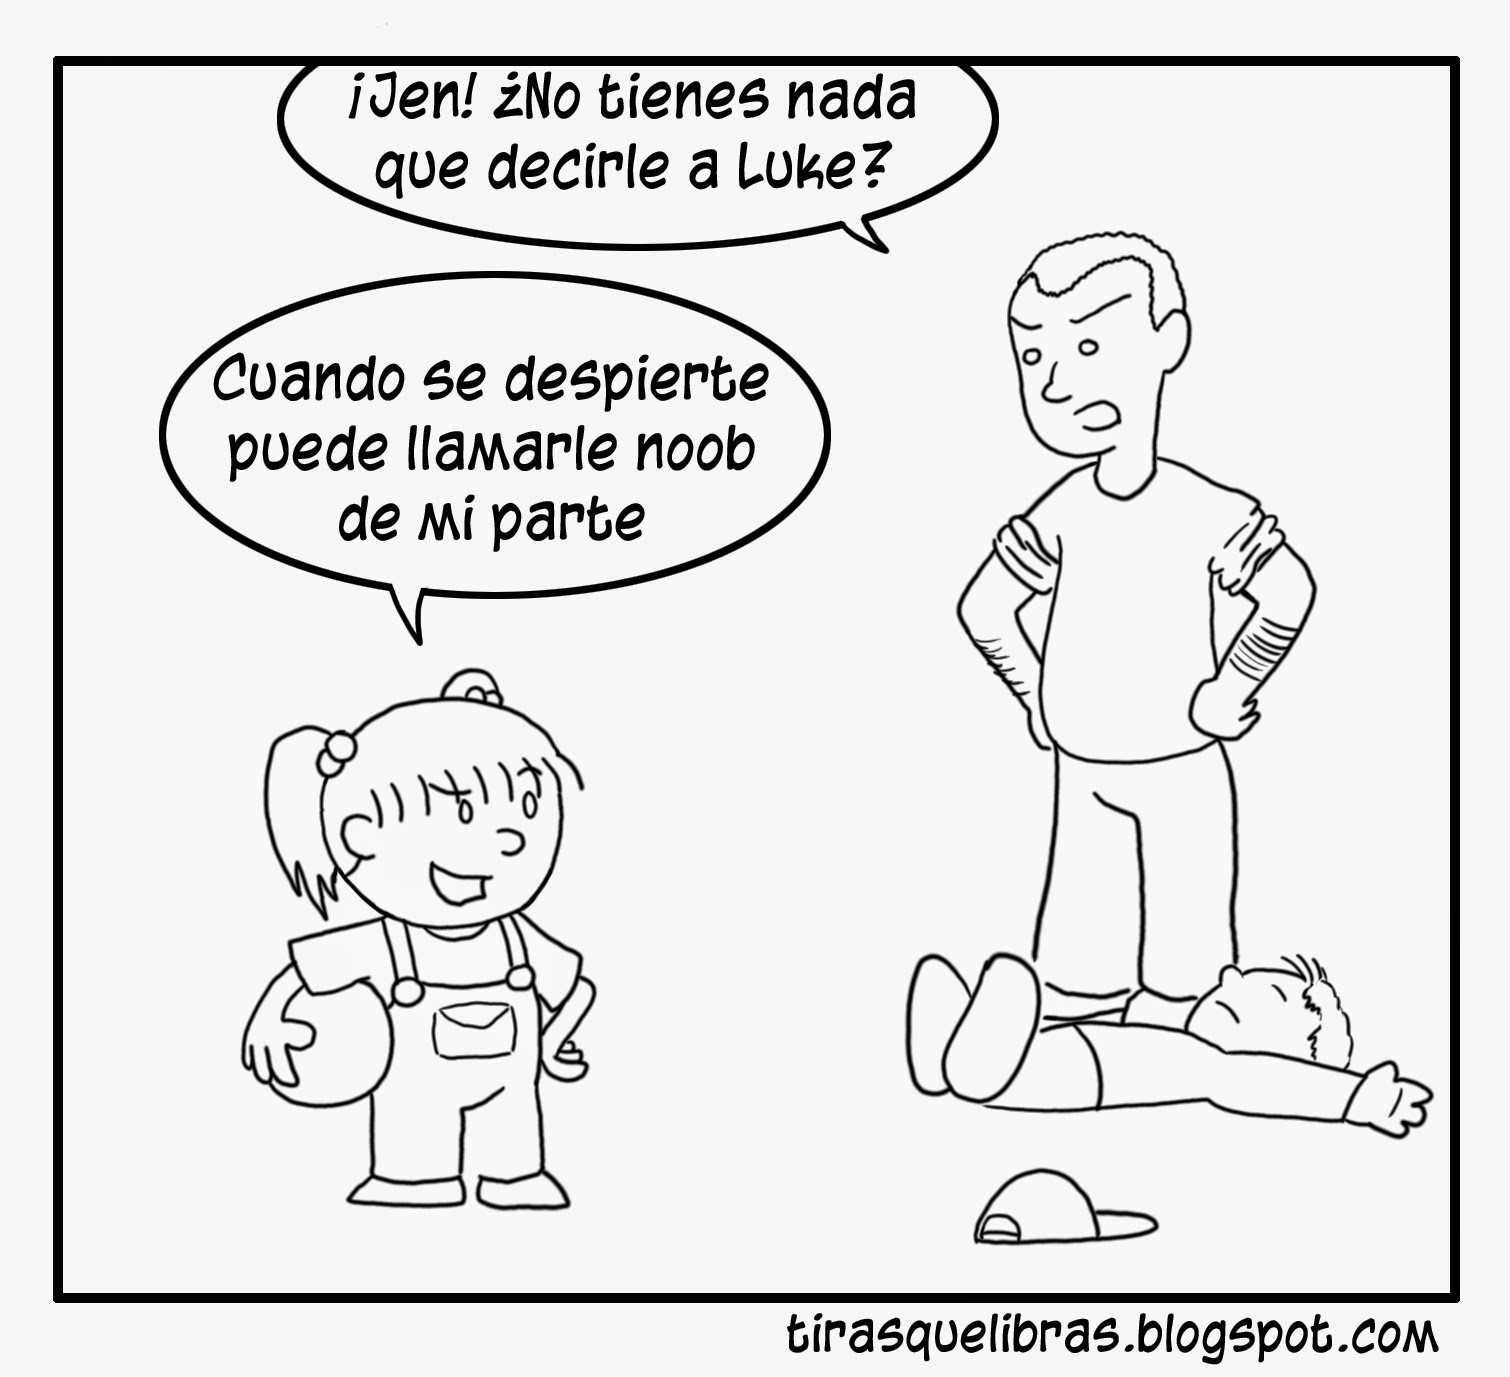 webcomic, Jen final partido de Dodgeball, le da un balonazo a Luke